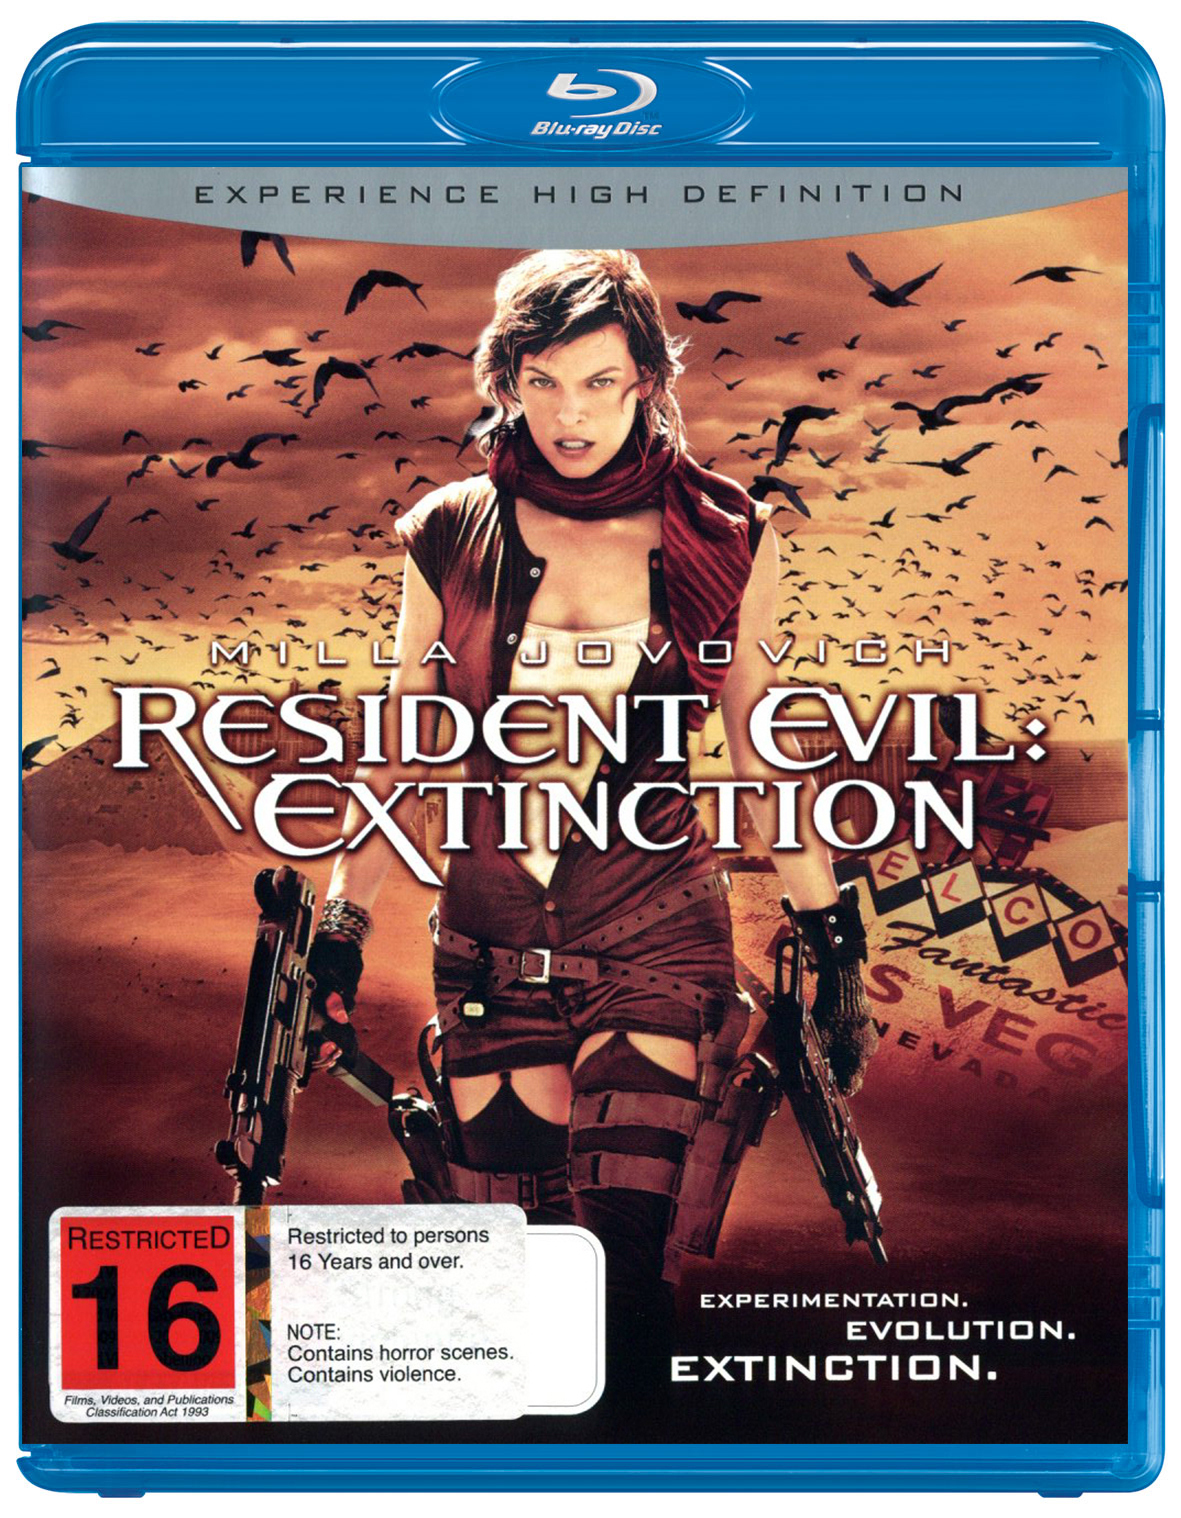 Resident Evil - Extinction on Blu-ray image